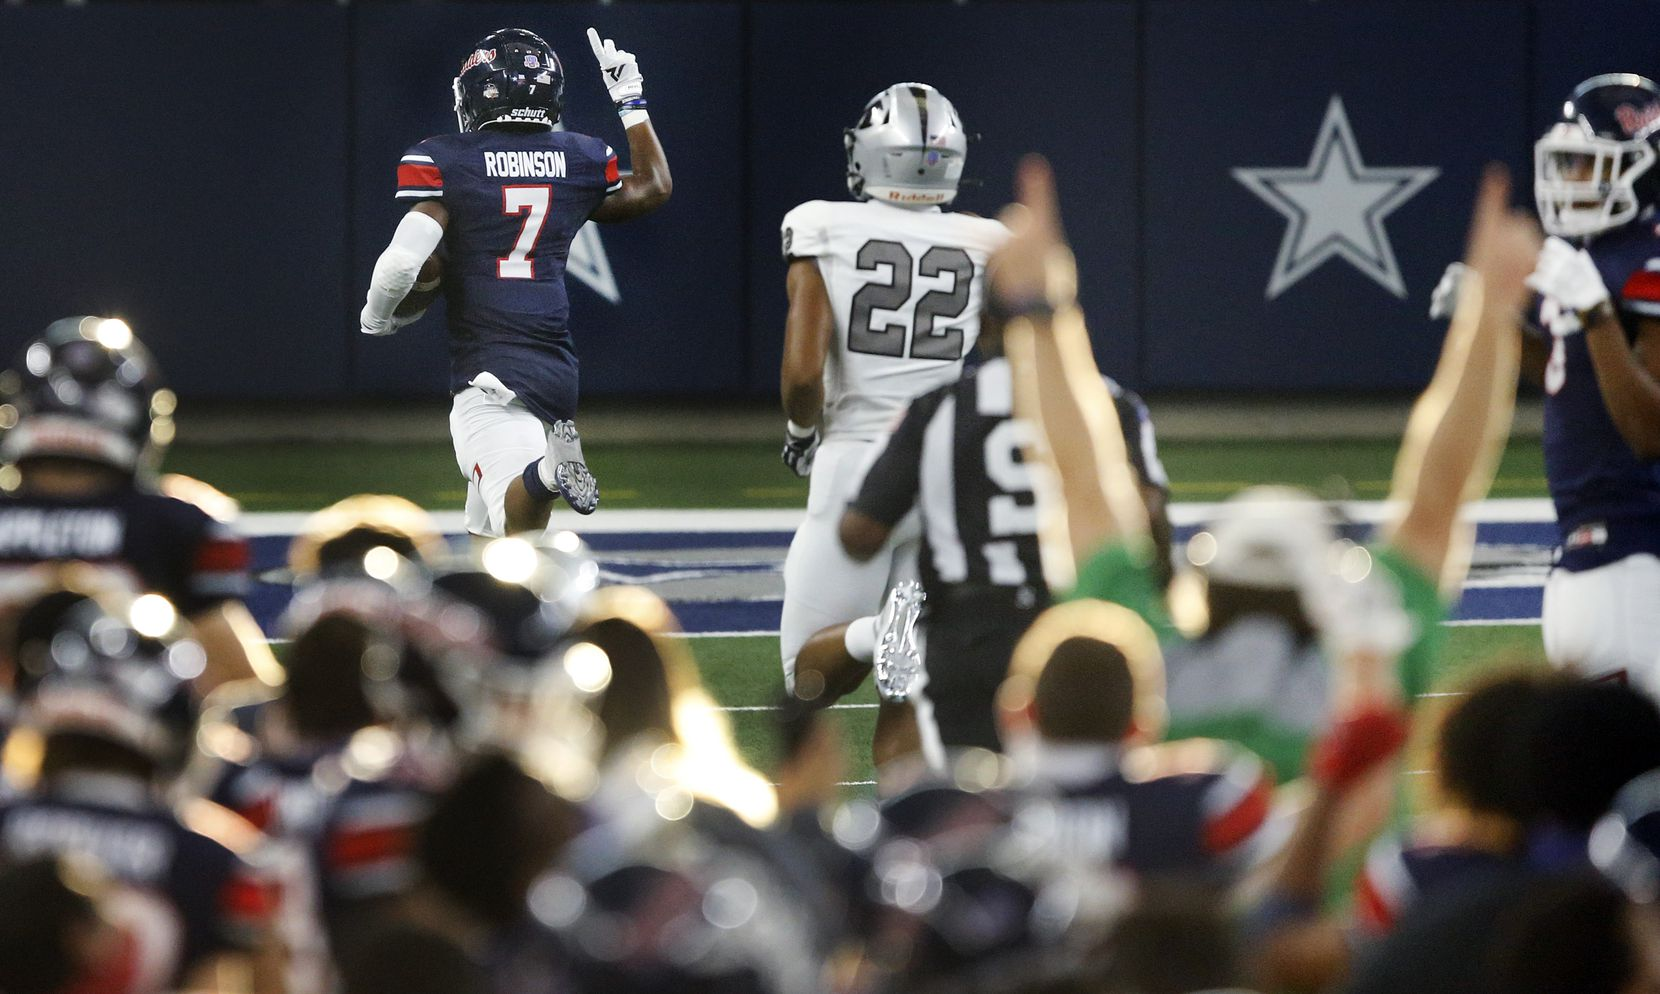 Denton Ryan cornerback Garyreon Robinson (7) races for a fourth quarter touchdown after picking up an Arlington Martin fumble at AT&T Stadium in Arlington, Friday, September 25, 2020. (Tom Fox/The Dallas Morning News)